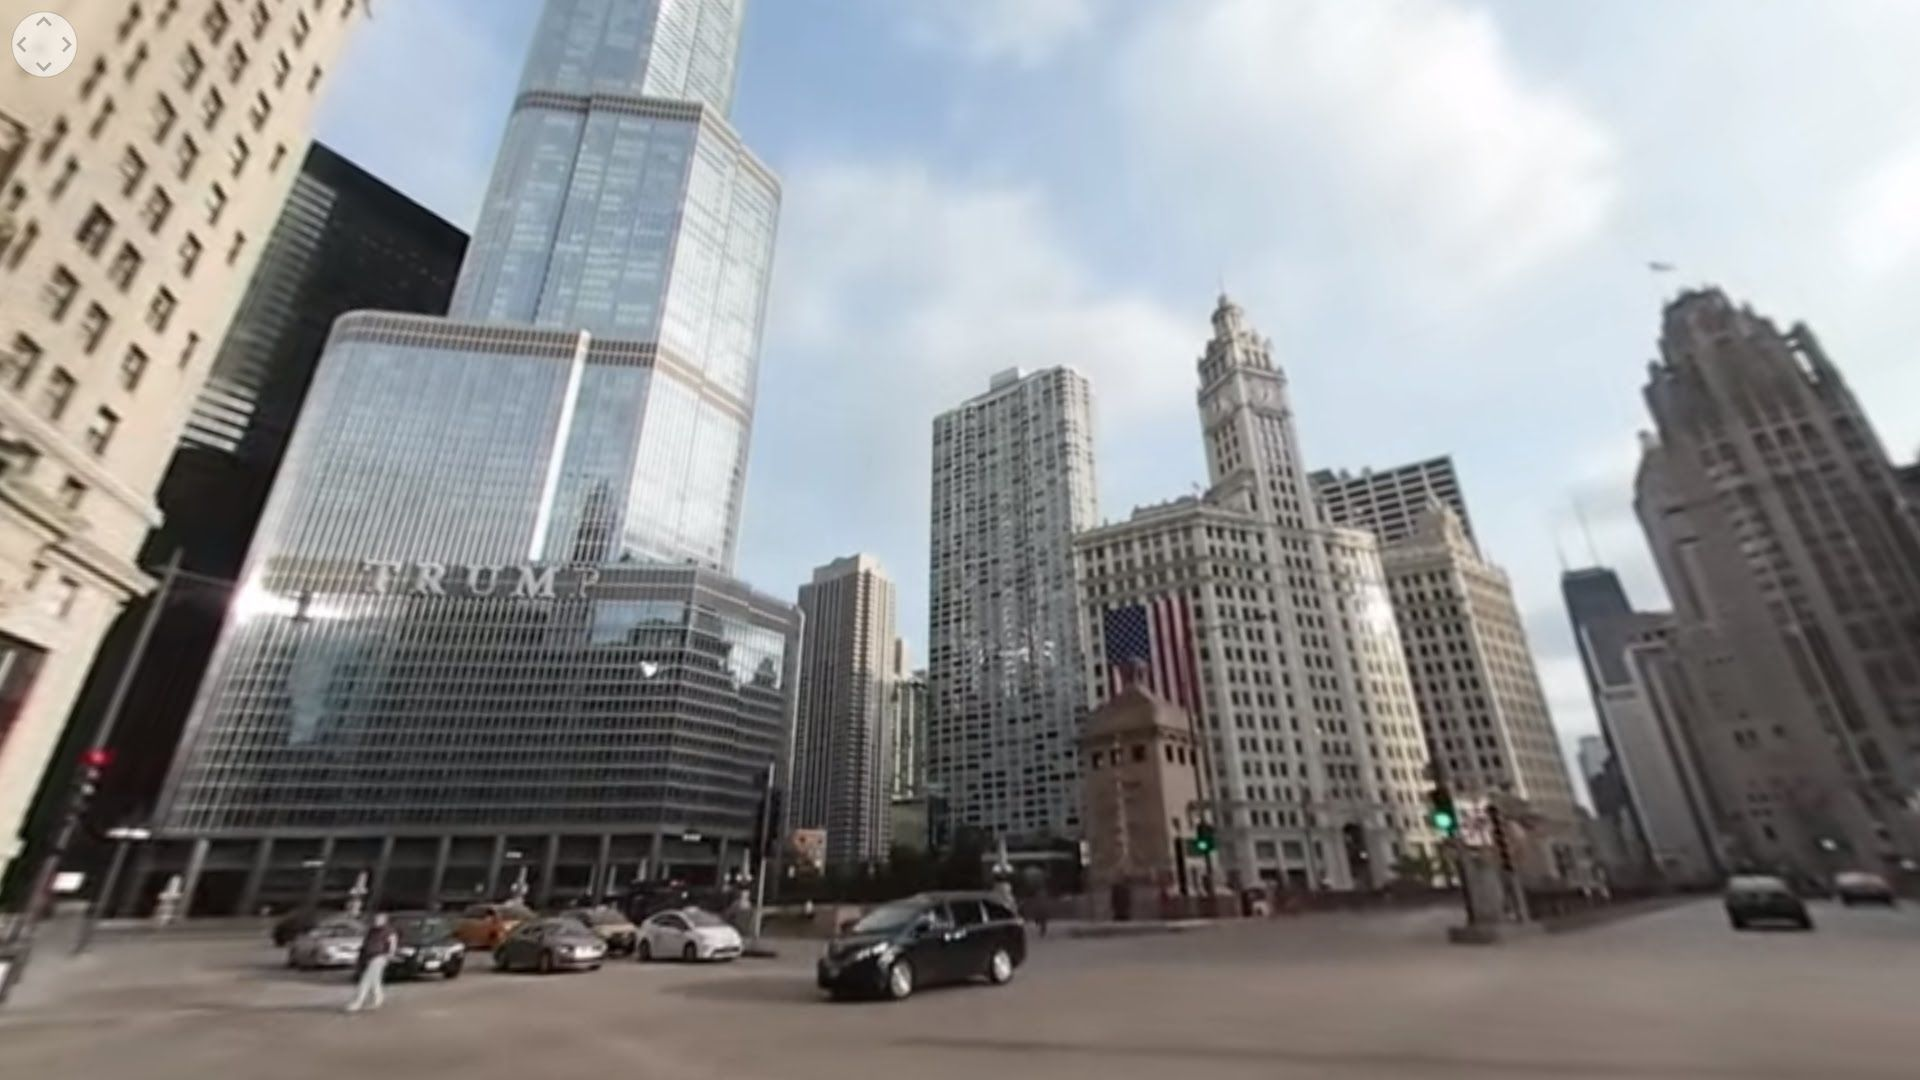 Driving Downtown Chicago S Main Street Chicago Illinois Usa Via J Utah 360 Downtown Chicago Downtown 7 Continents